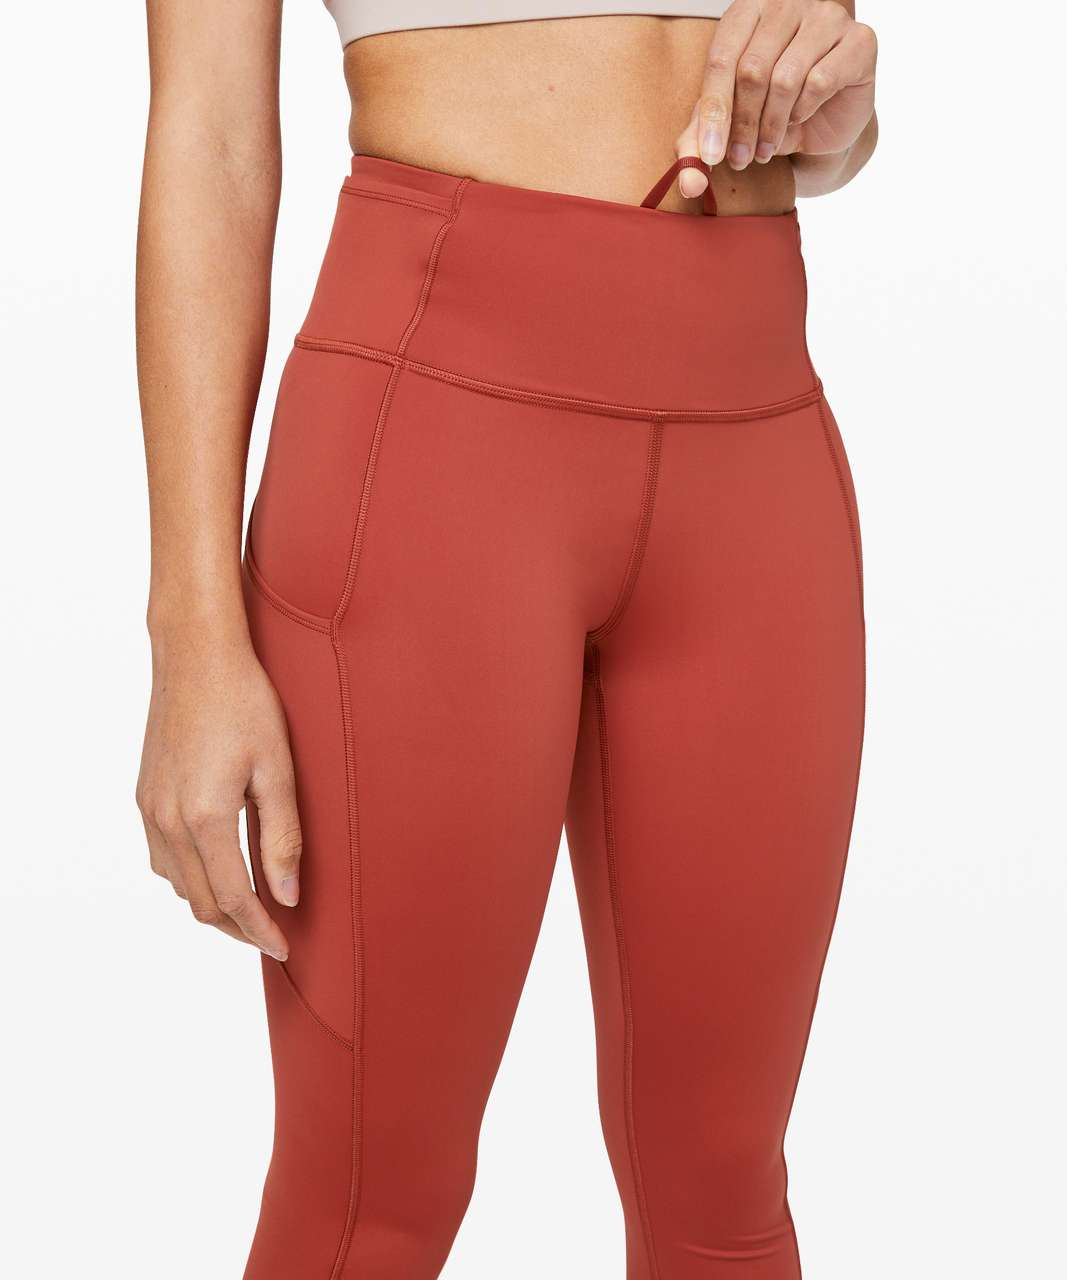 """Lululemon Fast and Free Tight II 25"""" *Non-Reflective Nulux - Cayenne"""